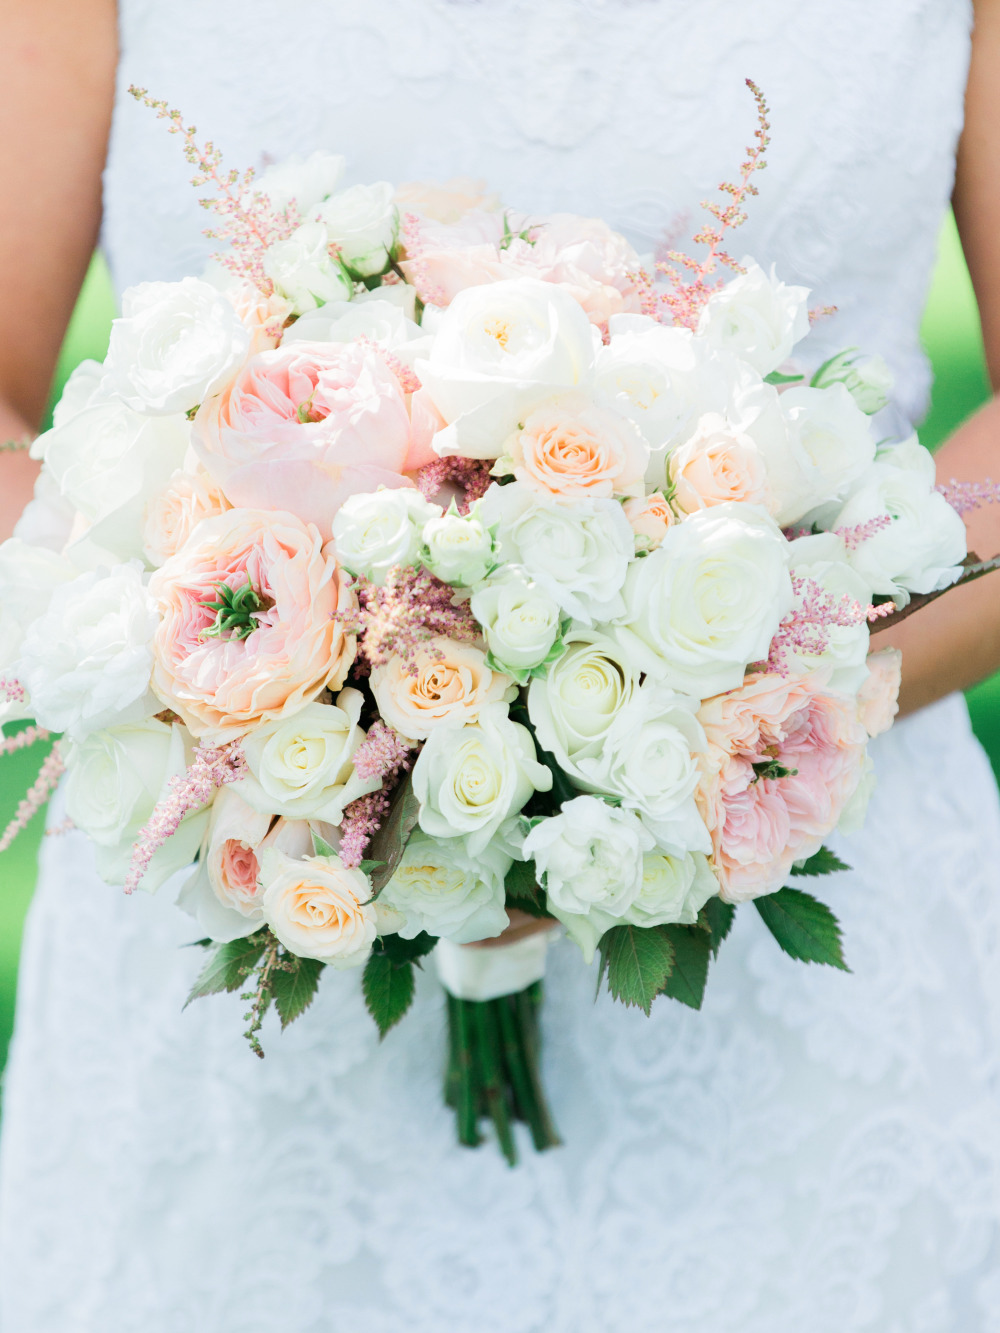 stunning pink and white wedding bride bouquet